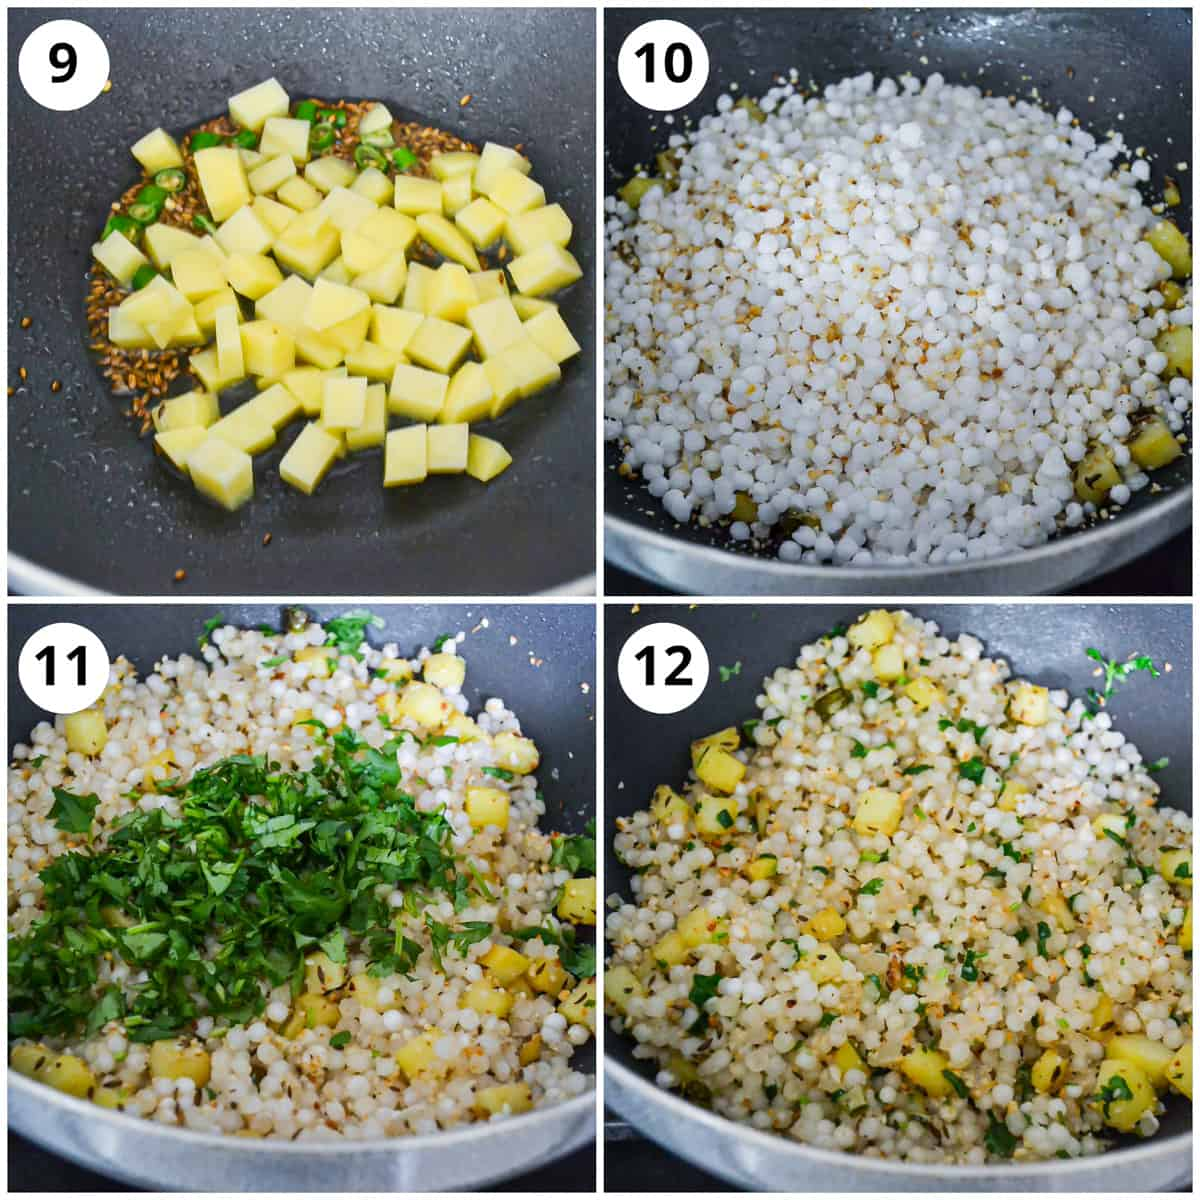 Four photos to show how to cook and make the dish to serve